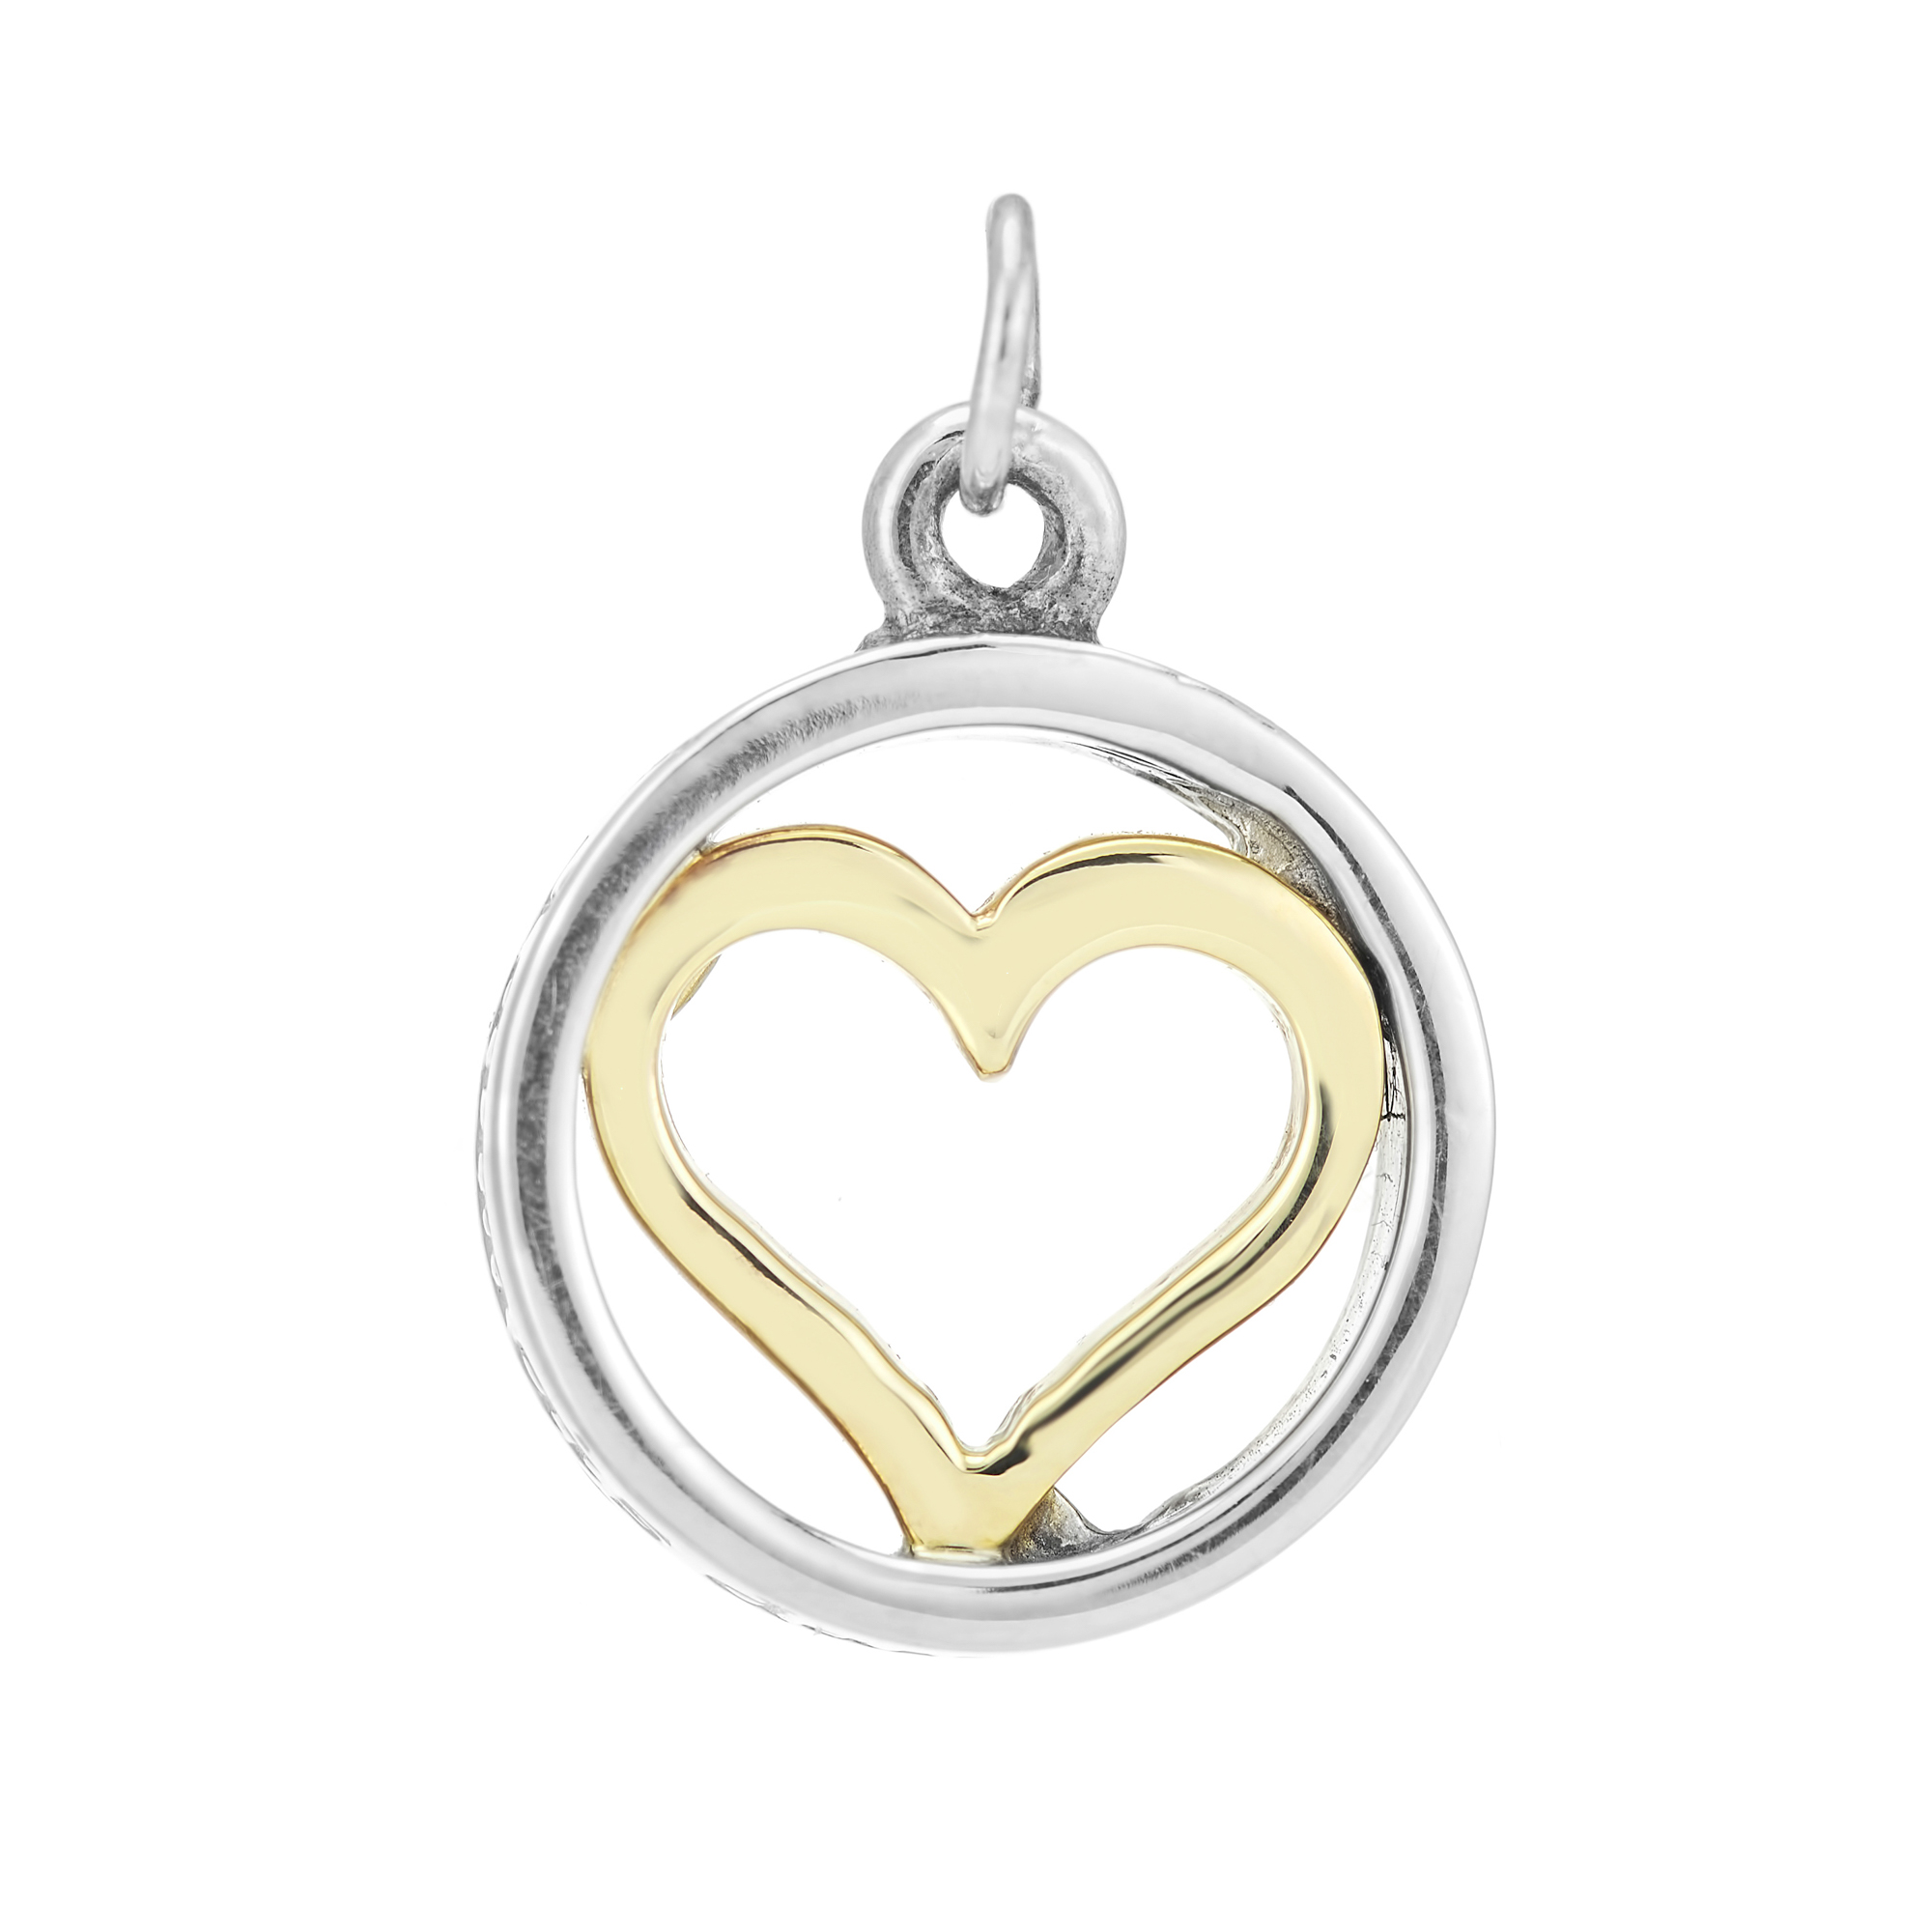 Sterling Silver and 9ct Yellow Gold Charm / Pendant